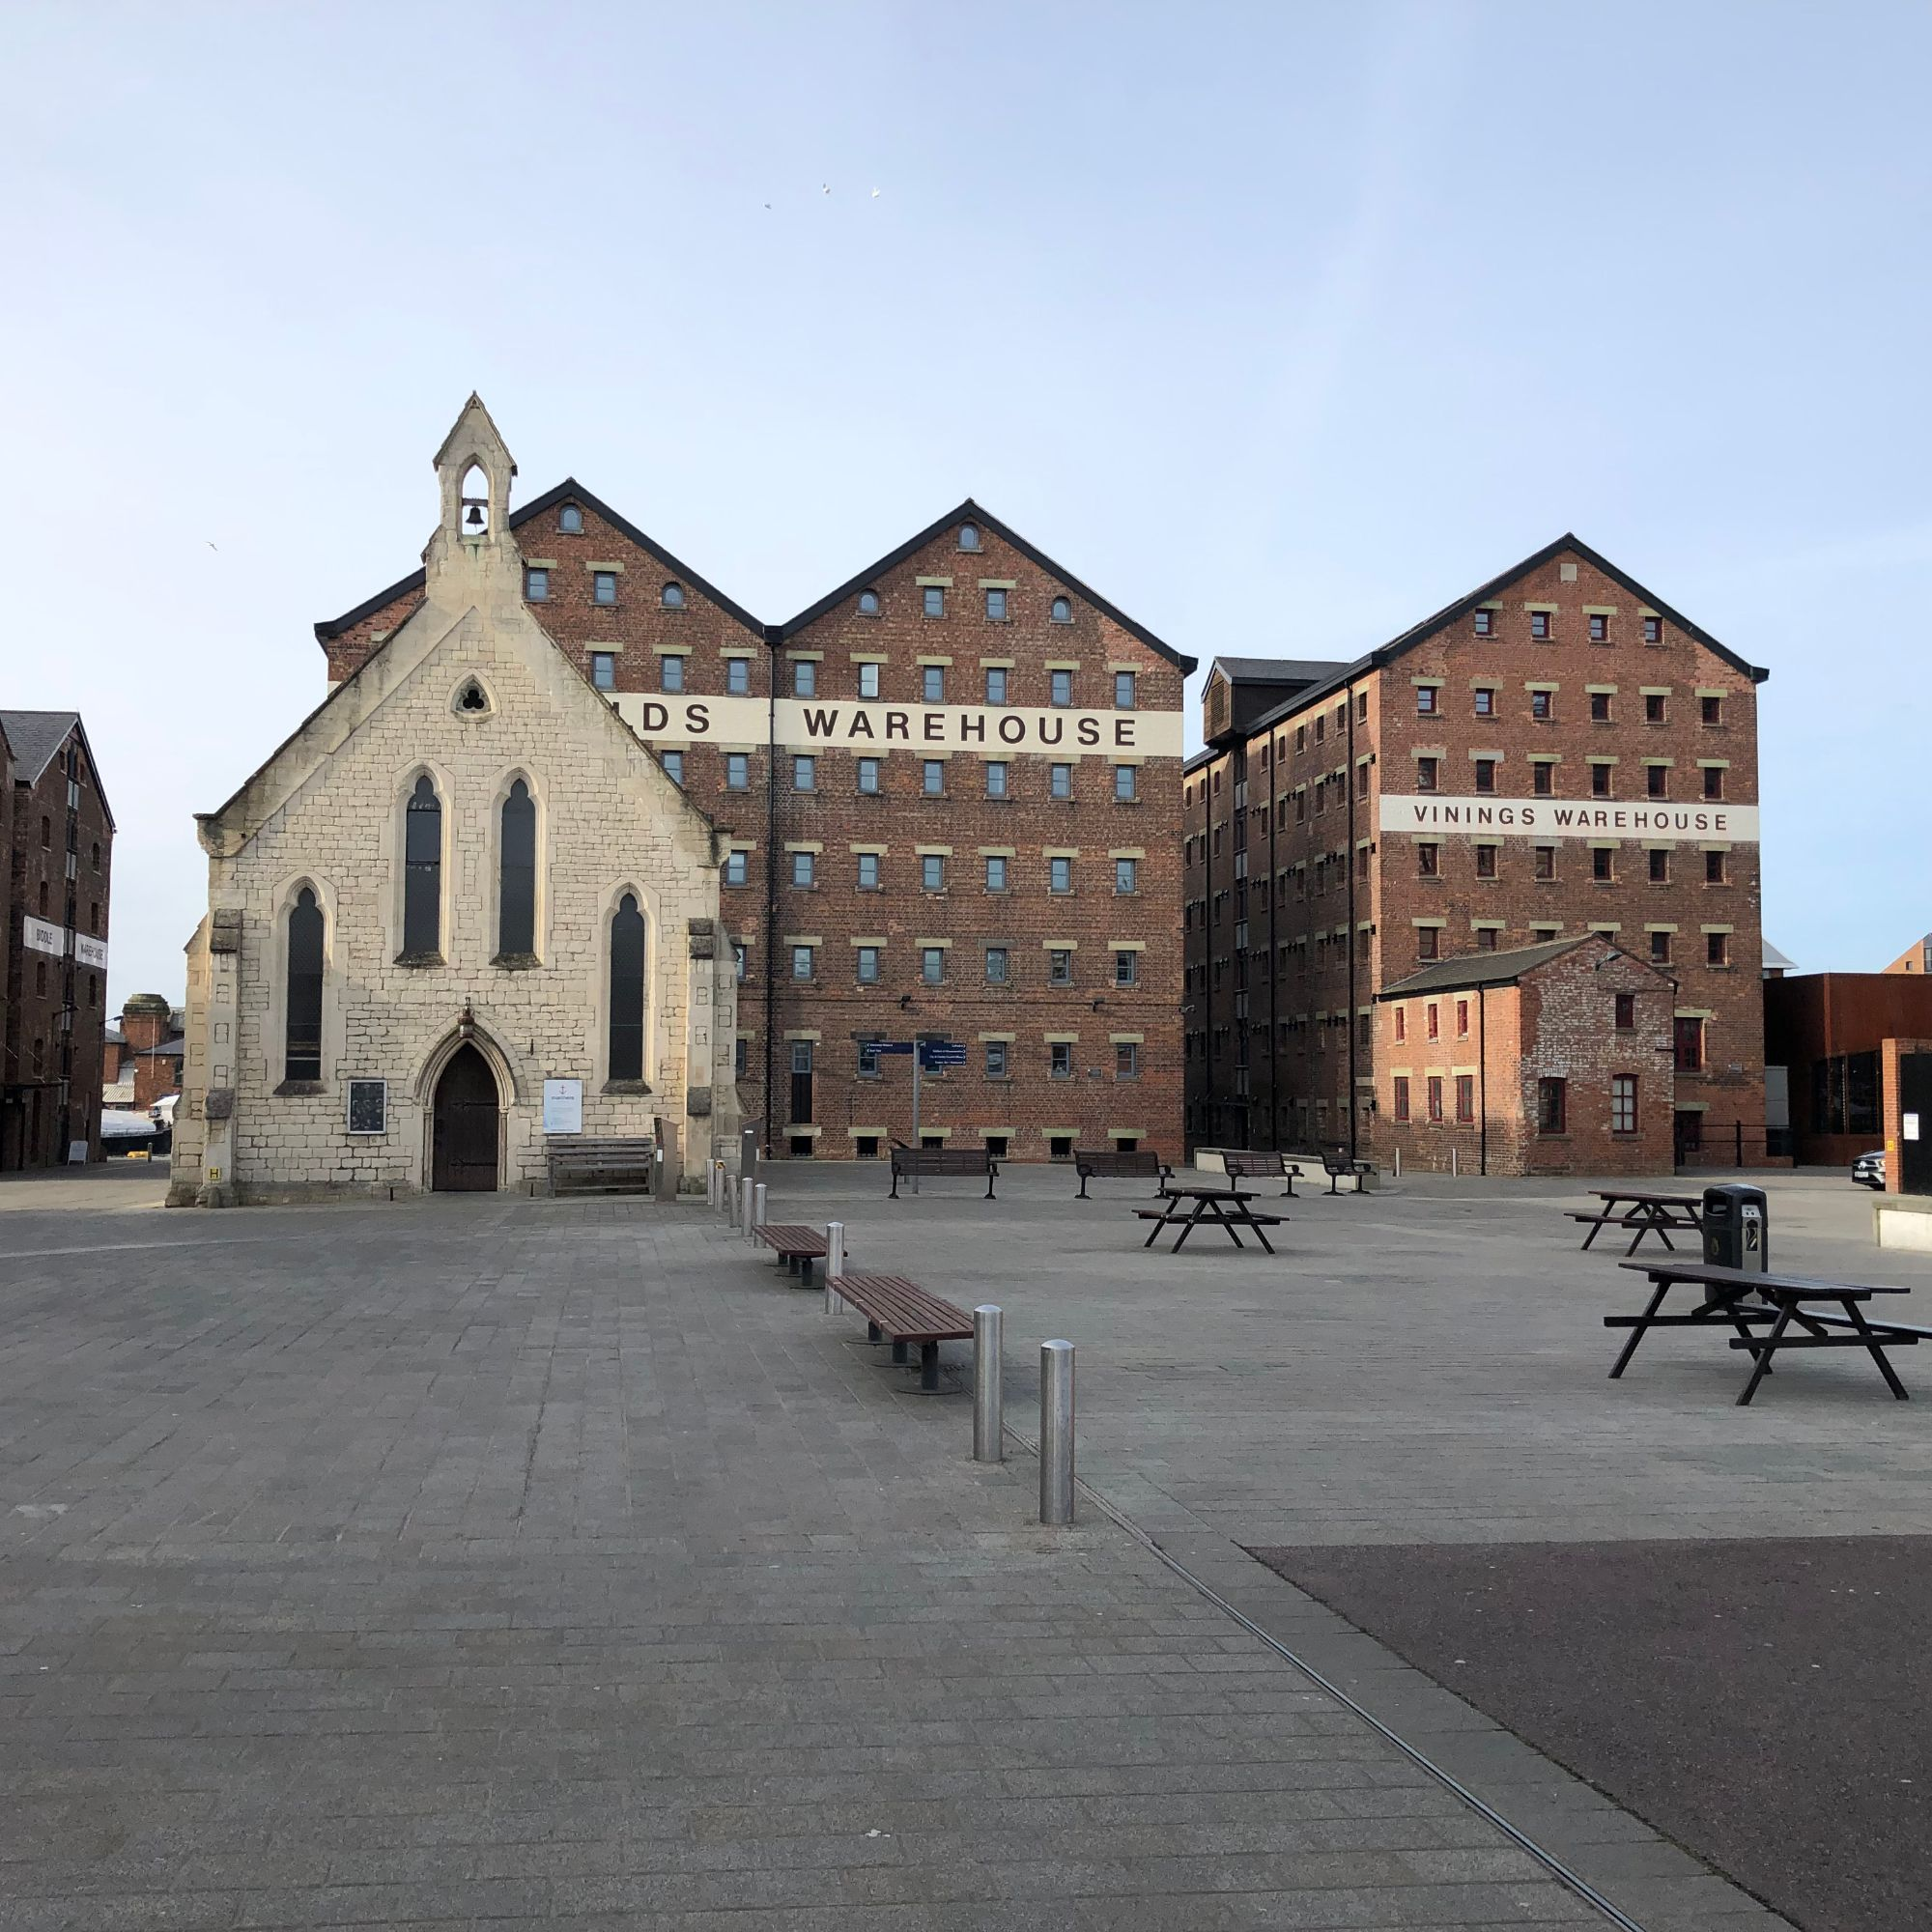 Free stock photo Gloucester Docks church  warehouses Victorian